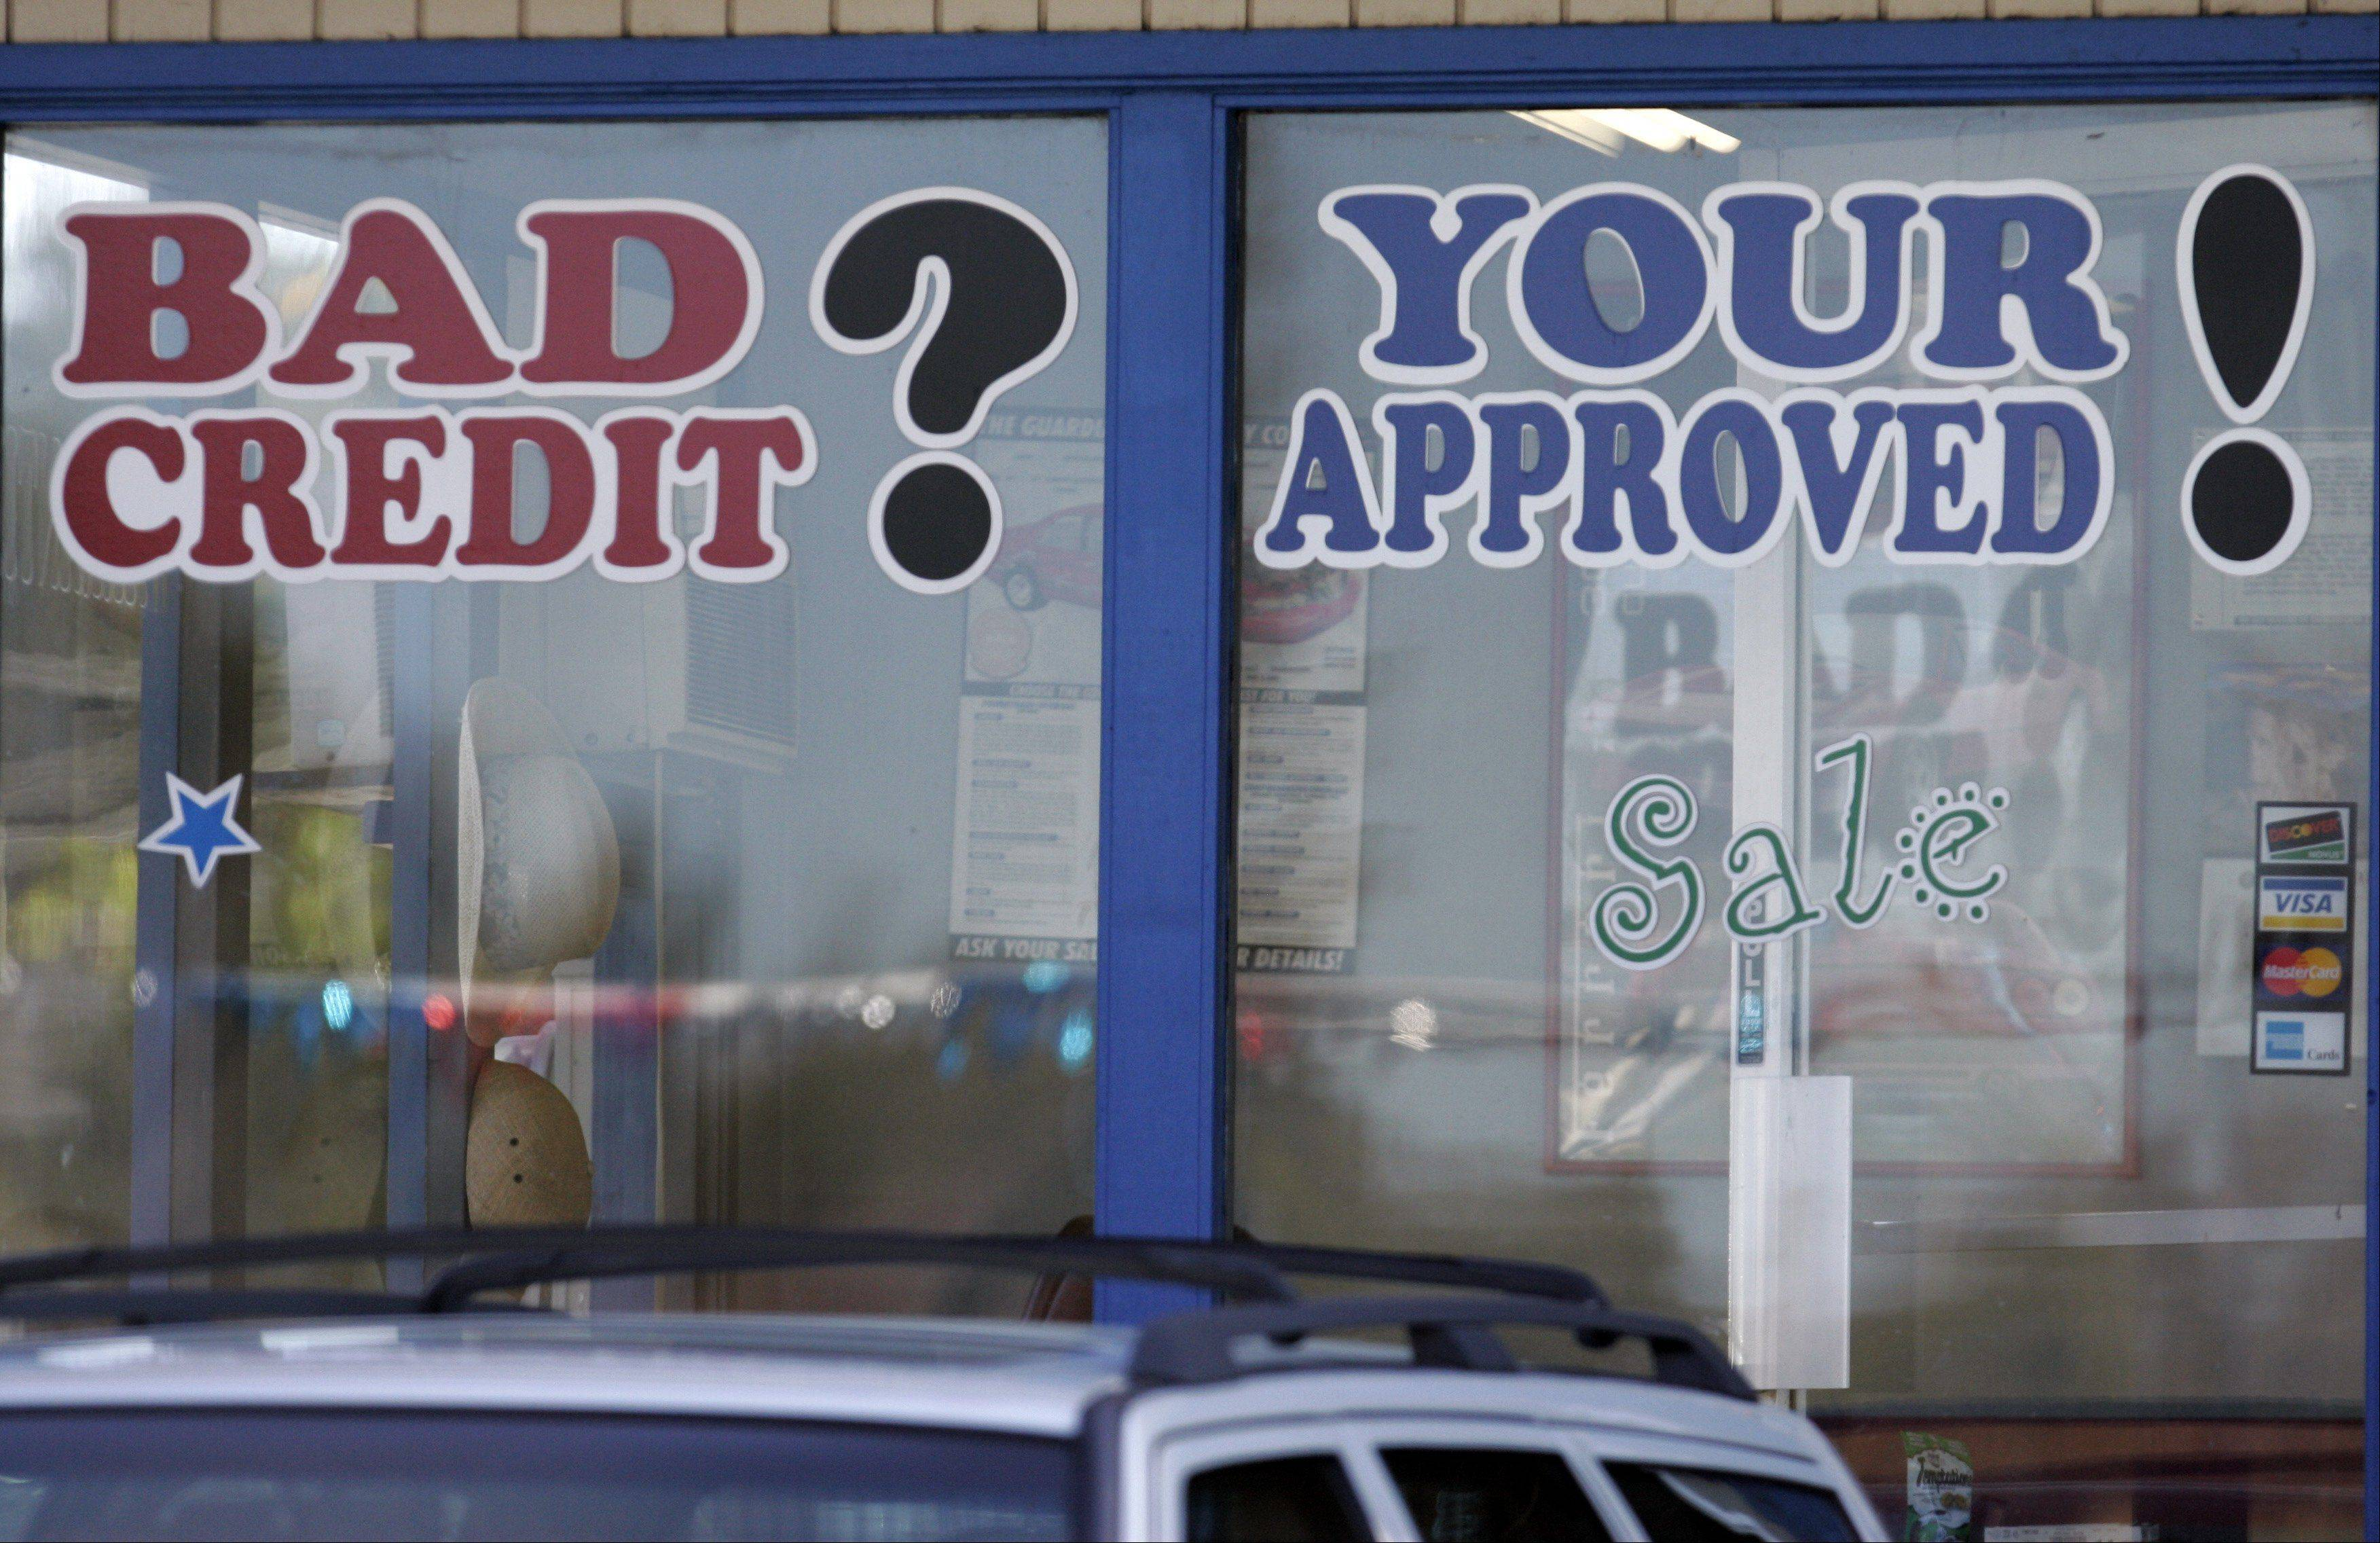 U.S. banks and auto finance companies are once again welcoming all kinds of customers, even those with less-than-stellar credit. The average credit scores of new and used car buyers, which spiked during the economic downturn, have fallen to nearly the same level as 2008.